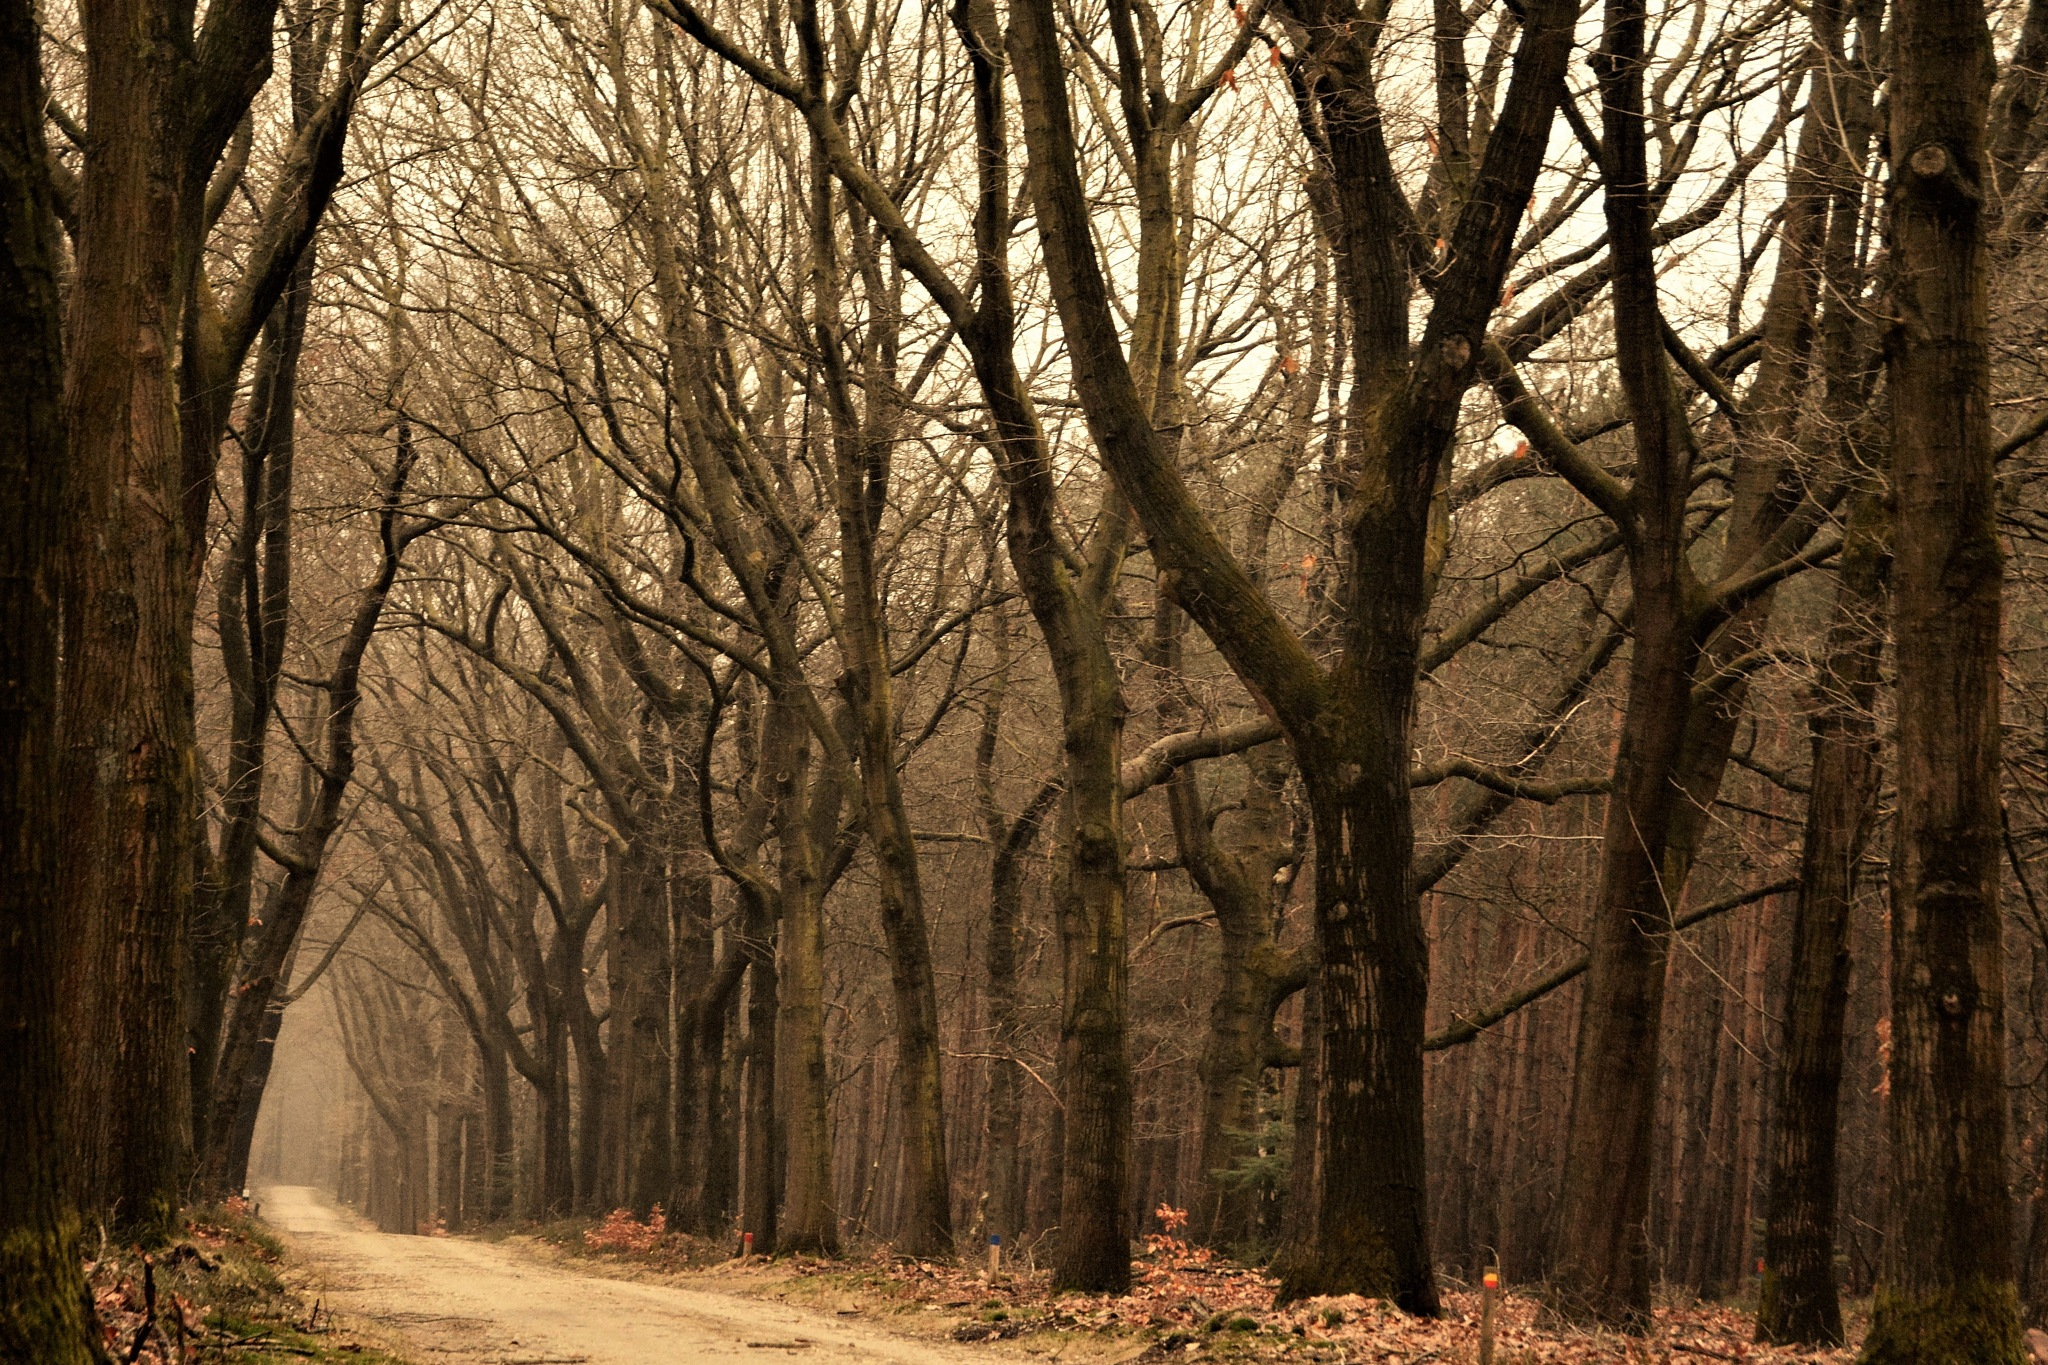 When the sun is not present the trees show their beautiful shapes. by Jannie Looge